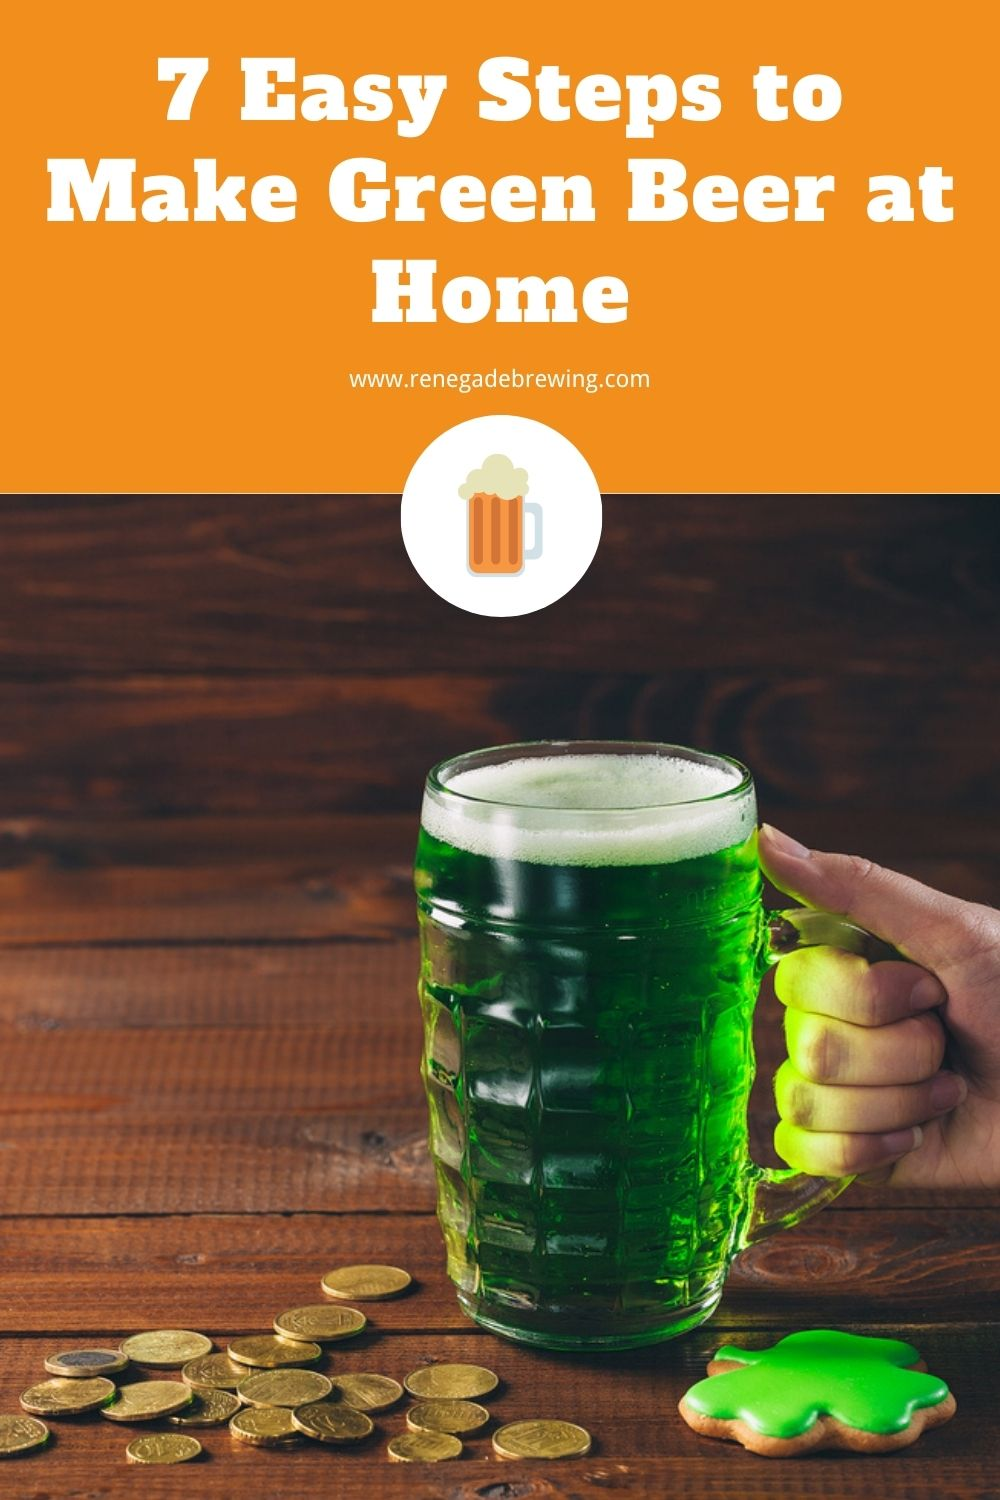 7 Easy Steps to Make Green Beer at Home 1